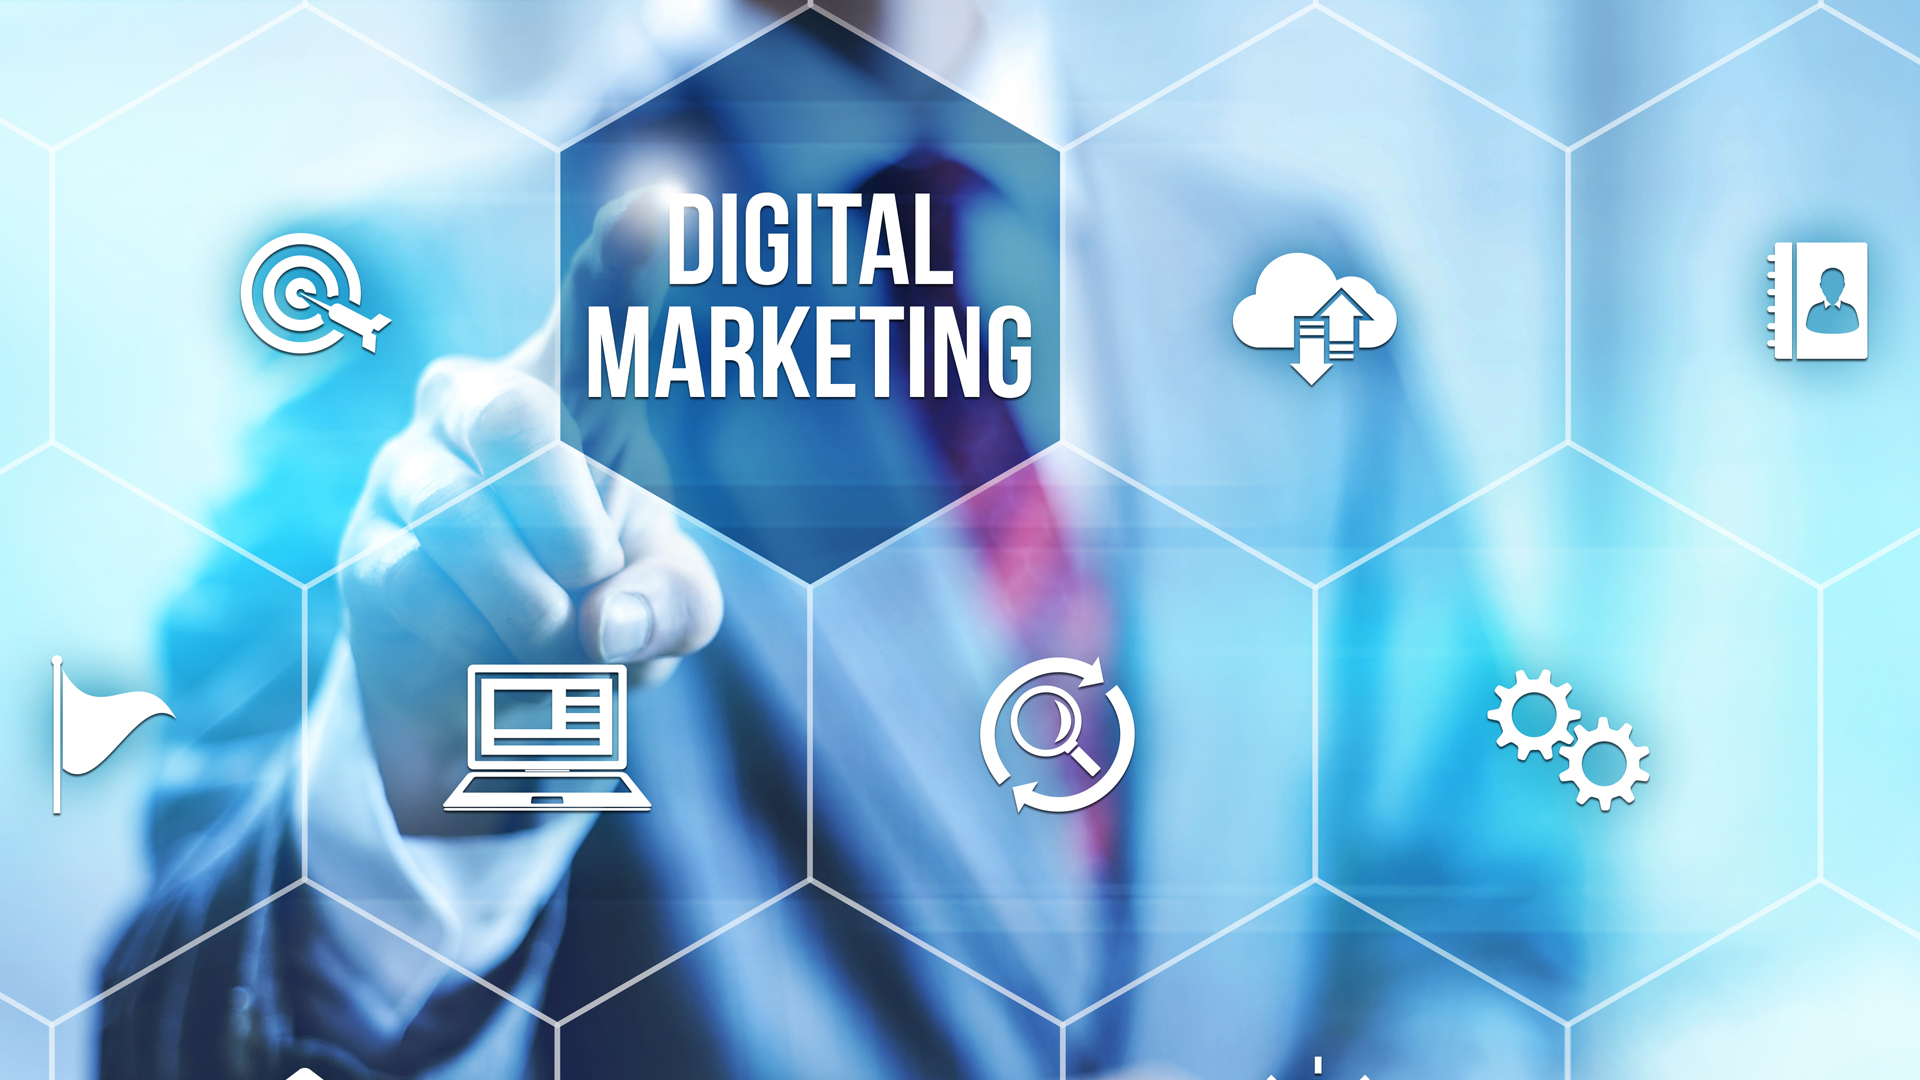 How to Choose the Right Service Provider for Your Digital Marketing Needs